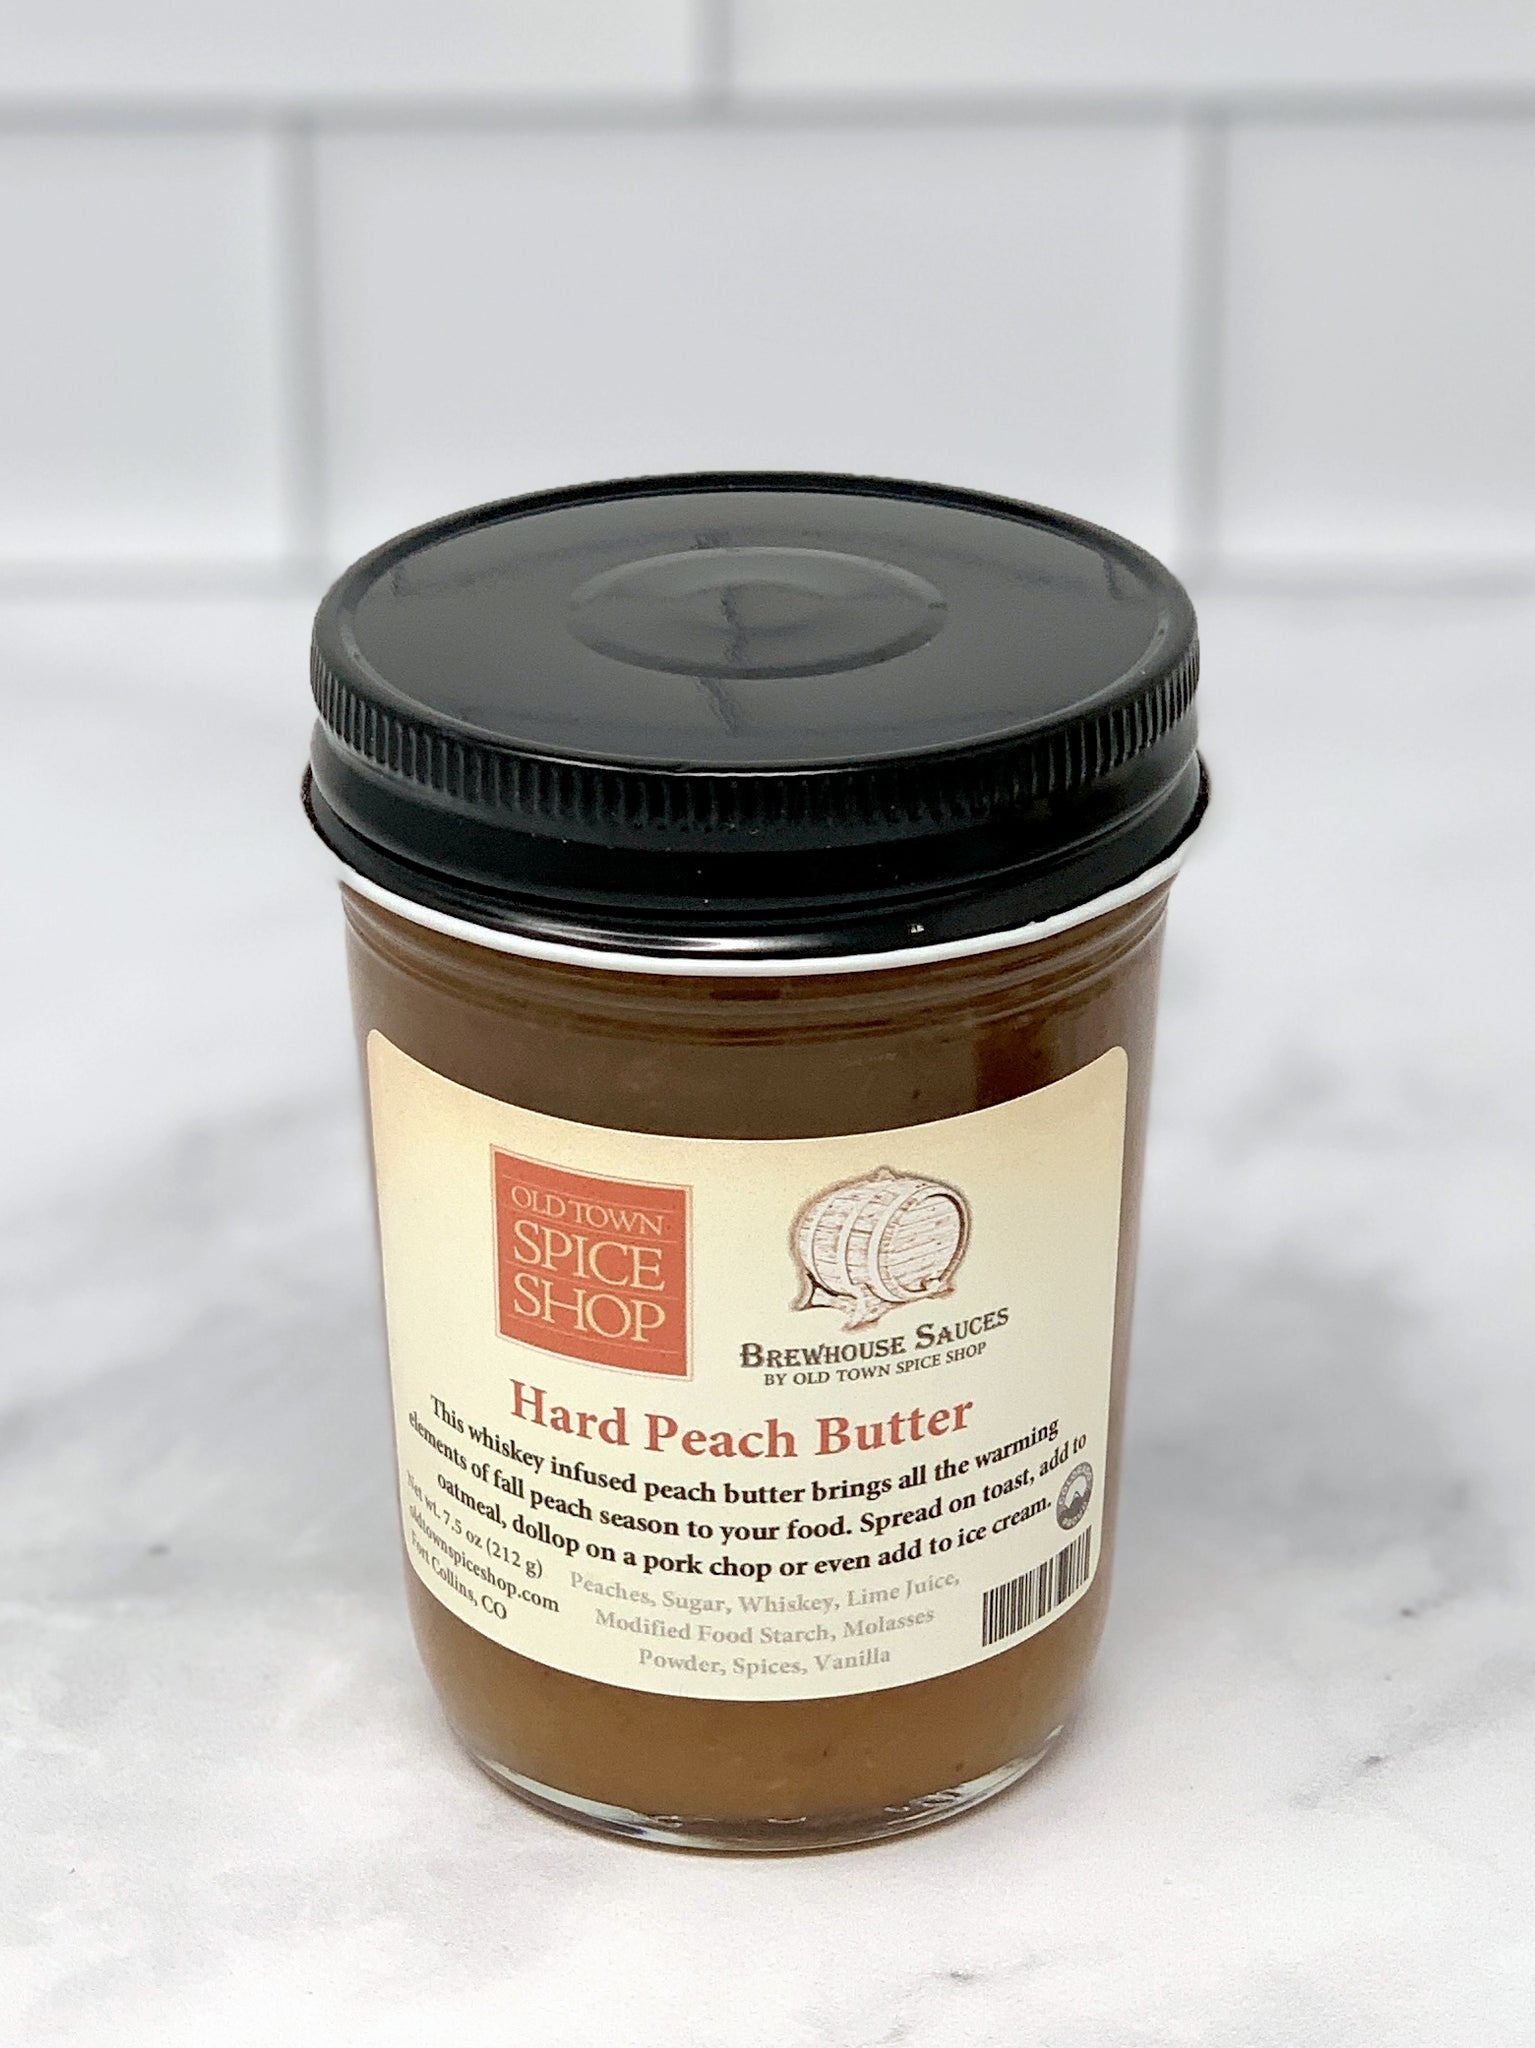 Hard Peach Butter